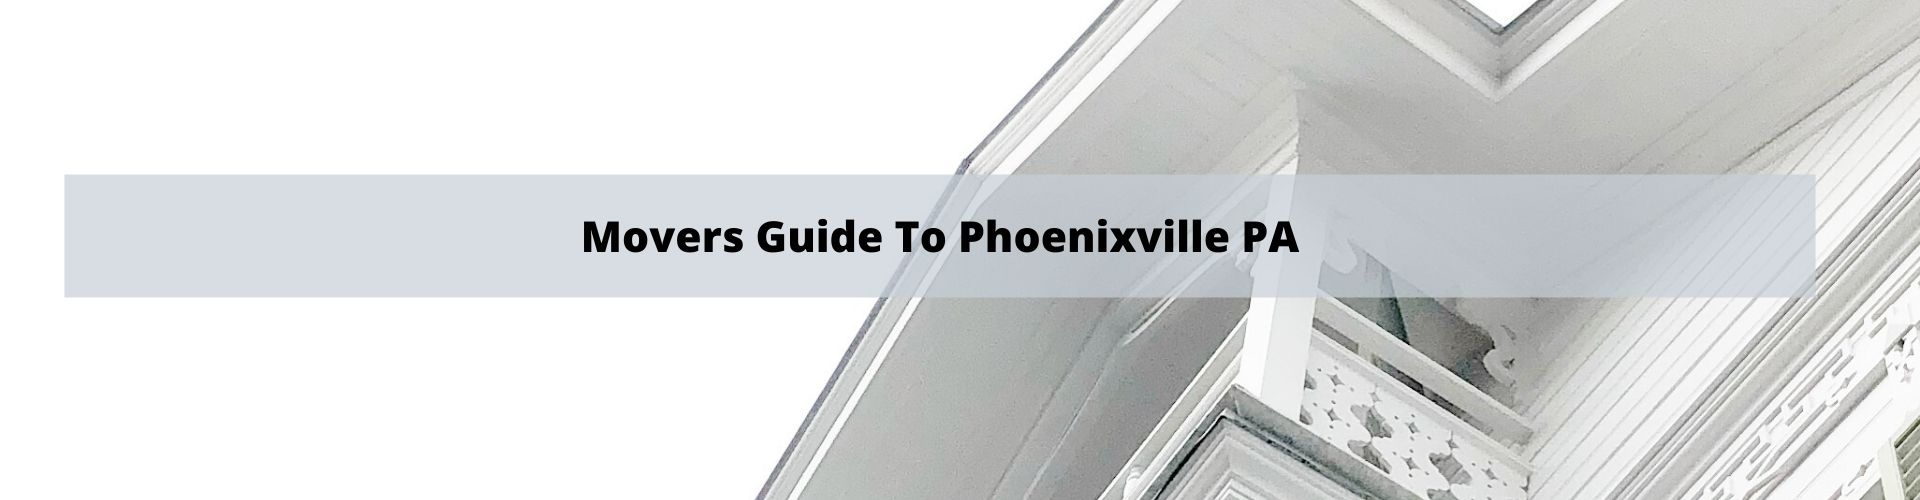 Mover's Guide to Phoenixville PA